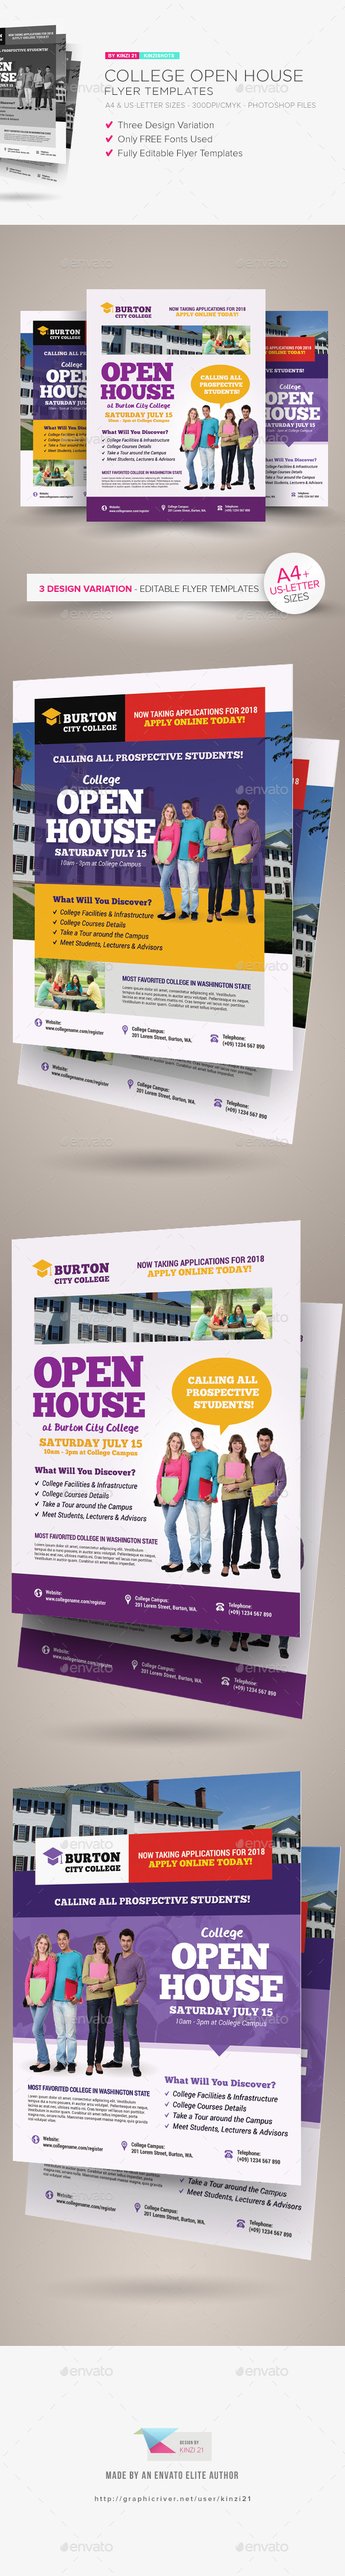 College Open House Flyer Templates - Corporate Flyers